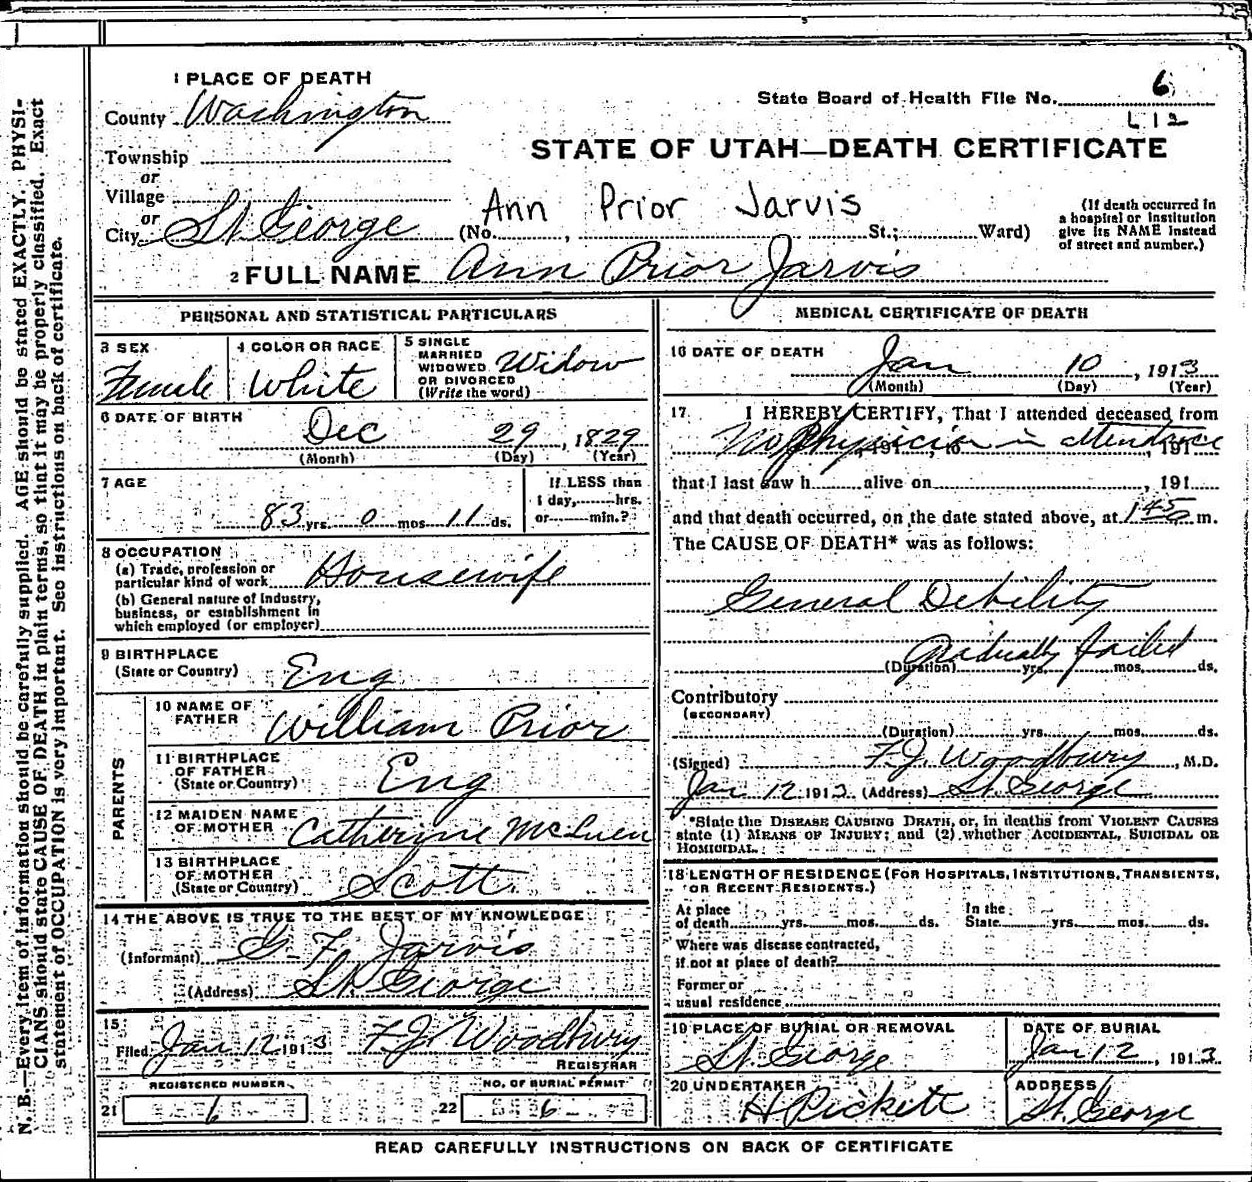 Theancestorfiles george and ann prior jarvis death certificates george and ann prior jarvis death certificates xflitez Choice Image